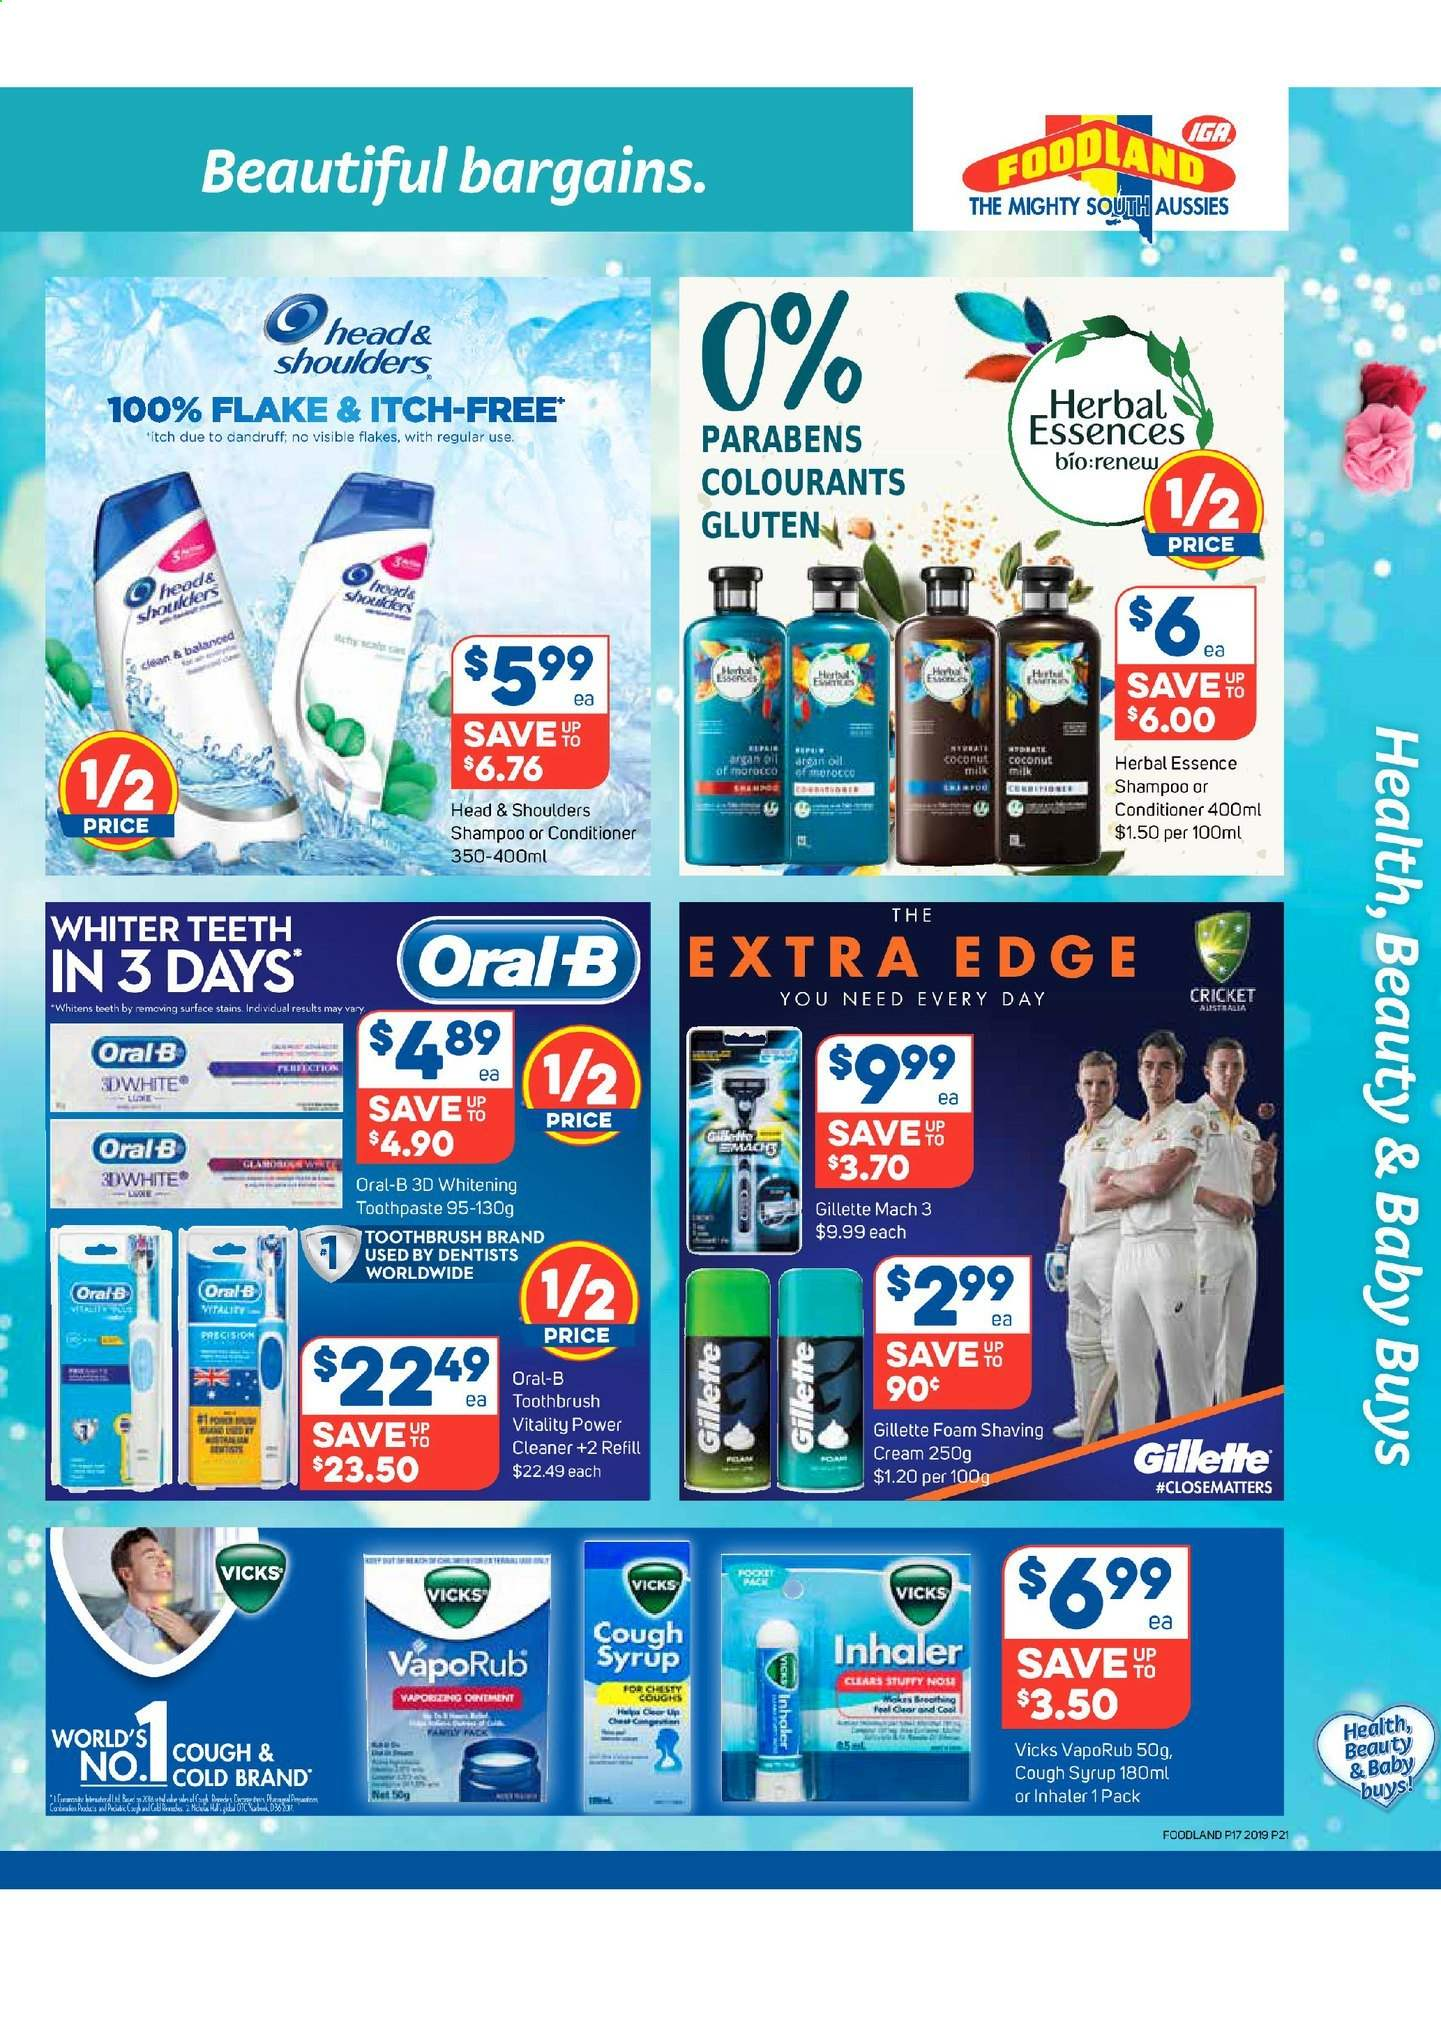 Foodland catalogue and weekly specials 24 4 2019 - 30 4 2019 | Au